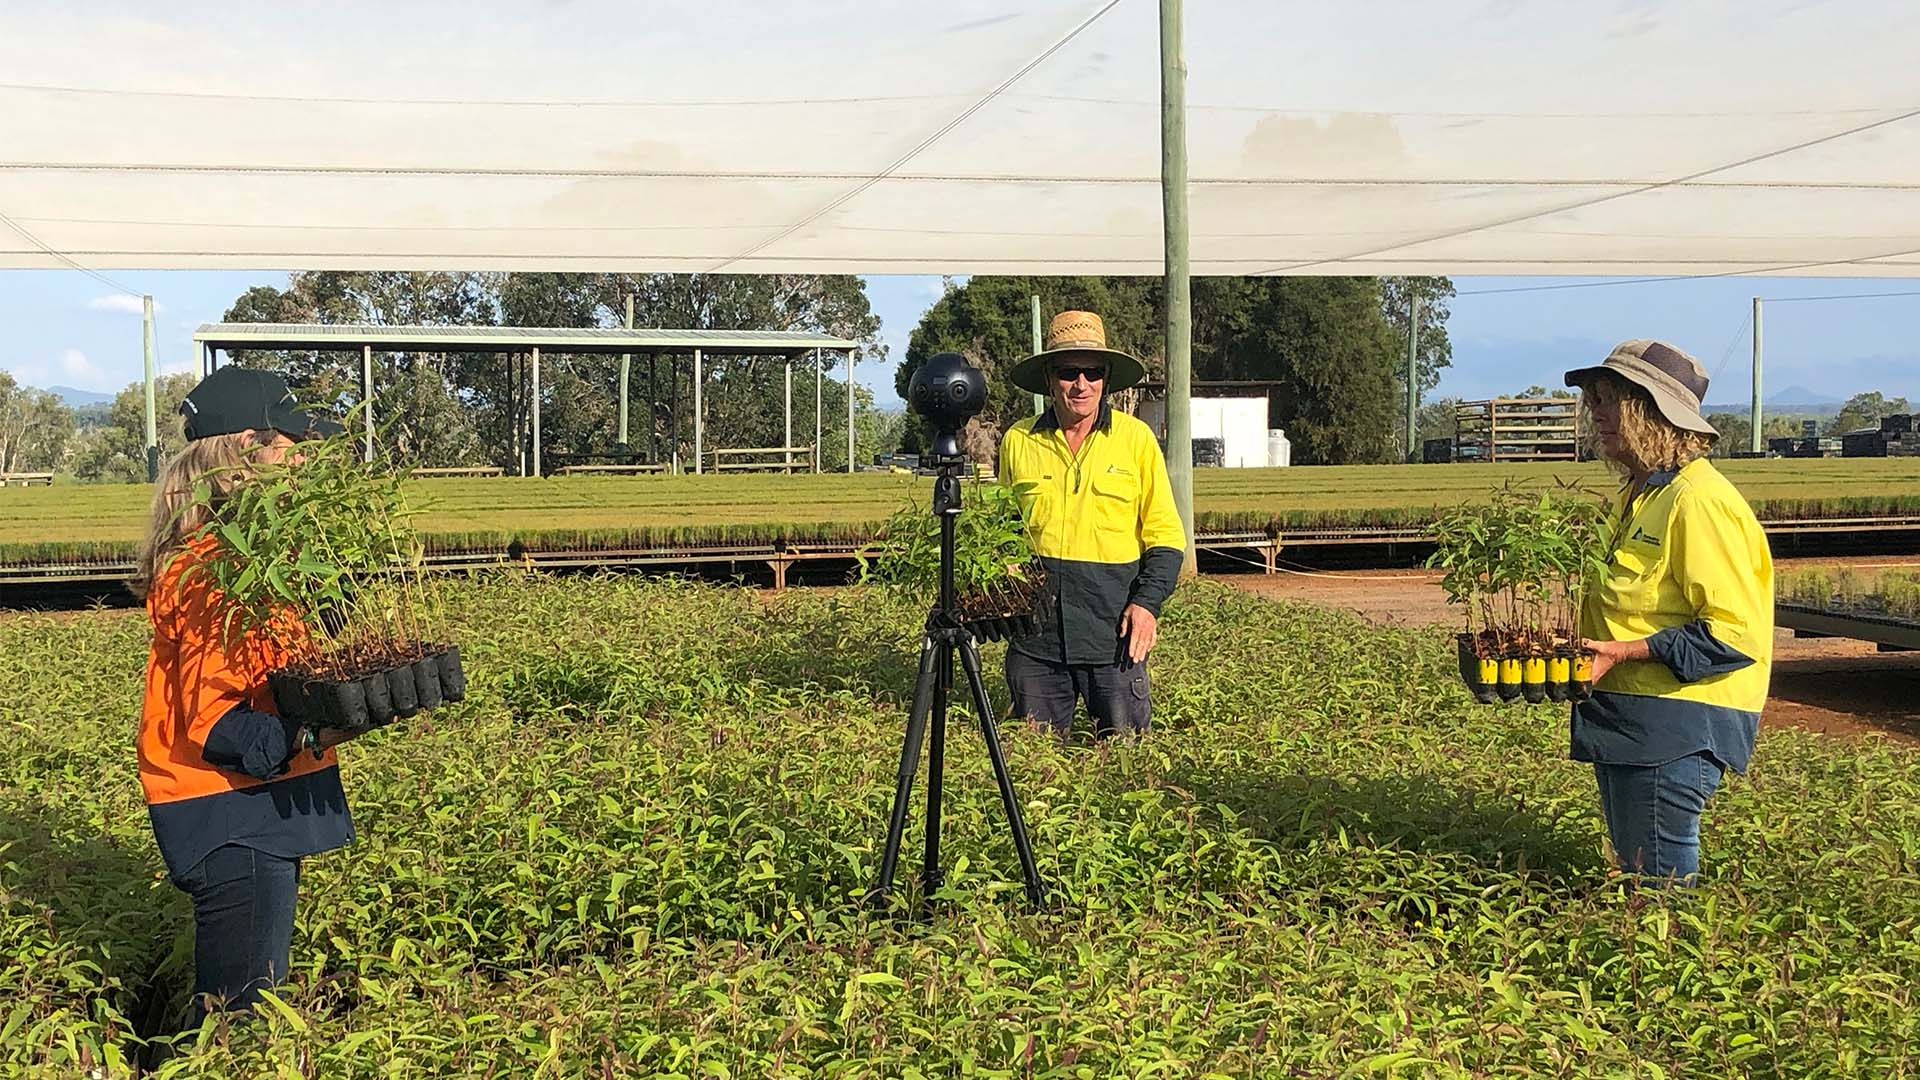 On set filming Agricultural 360 video production experience for Forest Learning